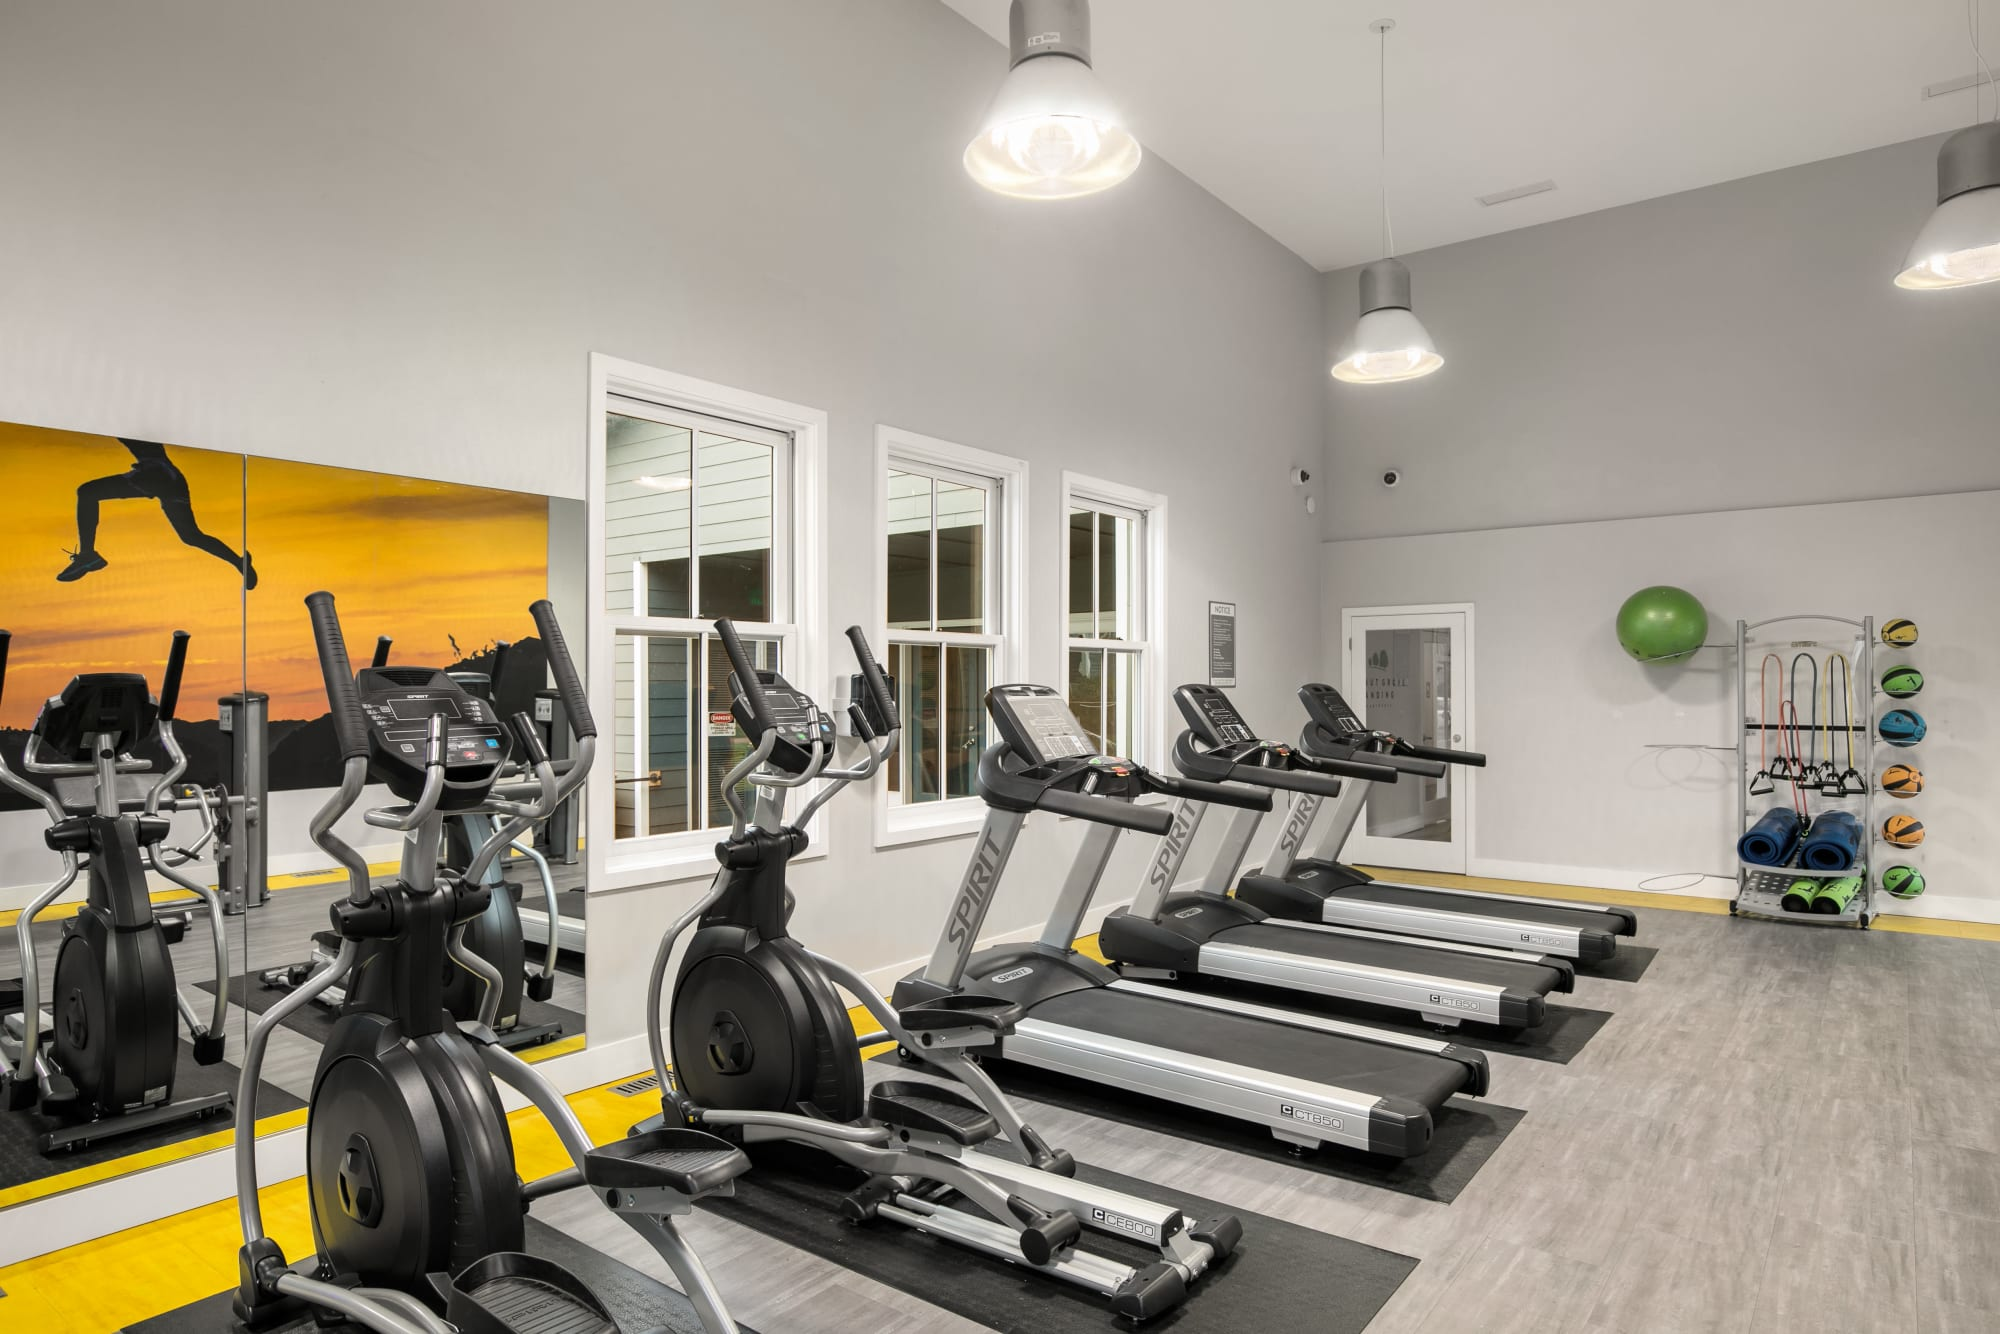 Fitness Center cardio machines with large windows looking out to pool area